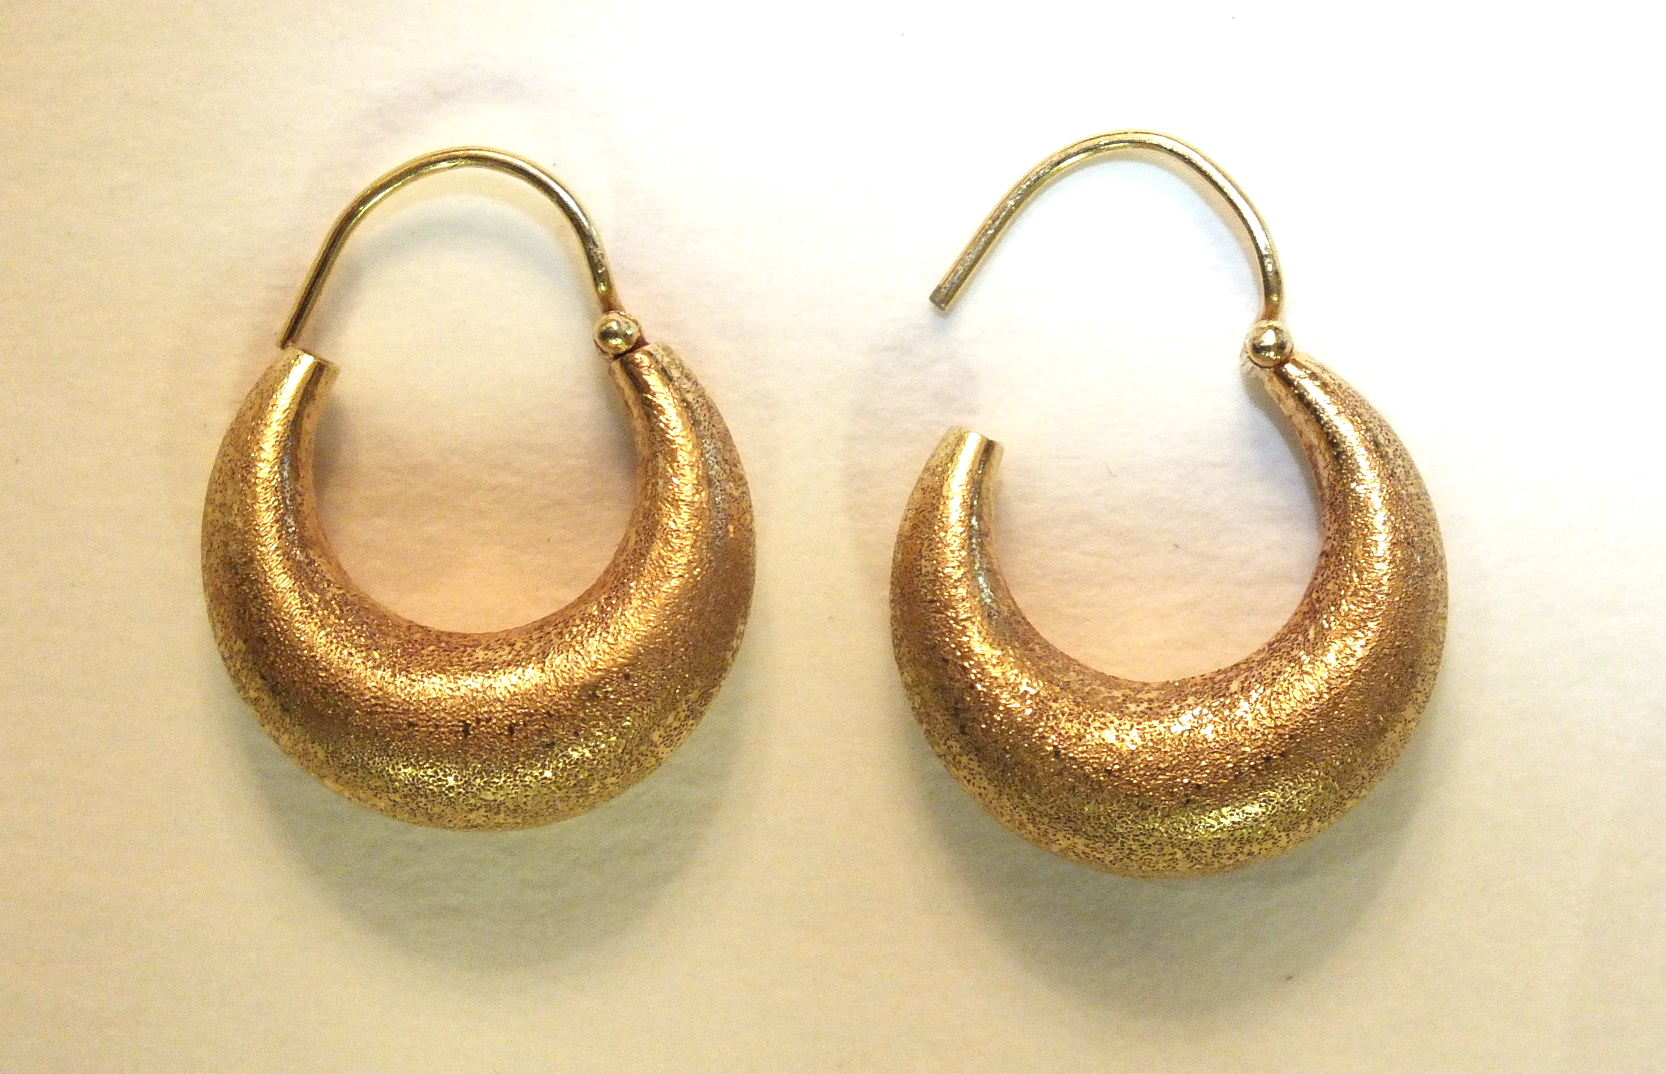 A pair of yellow metal hoop earrings with textured surface, unmarked, 4g.